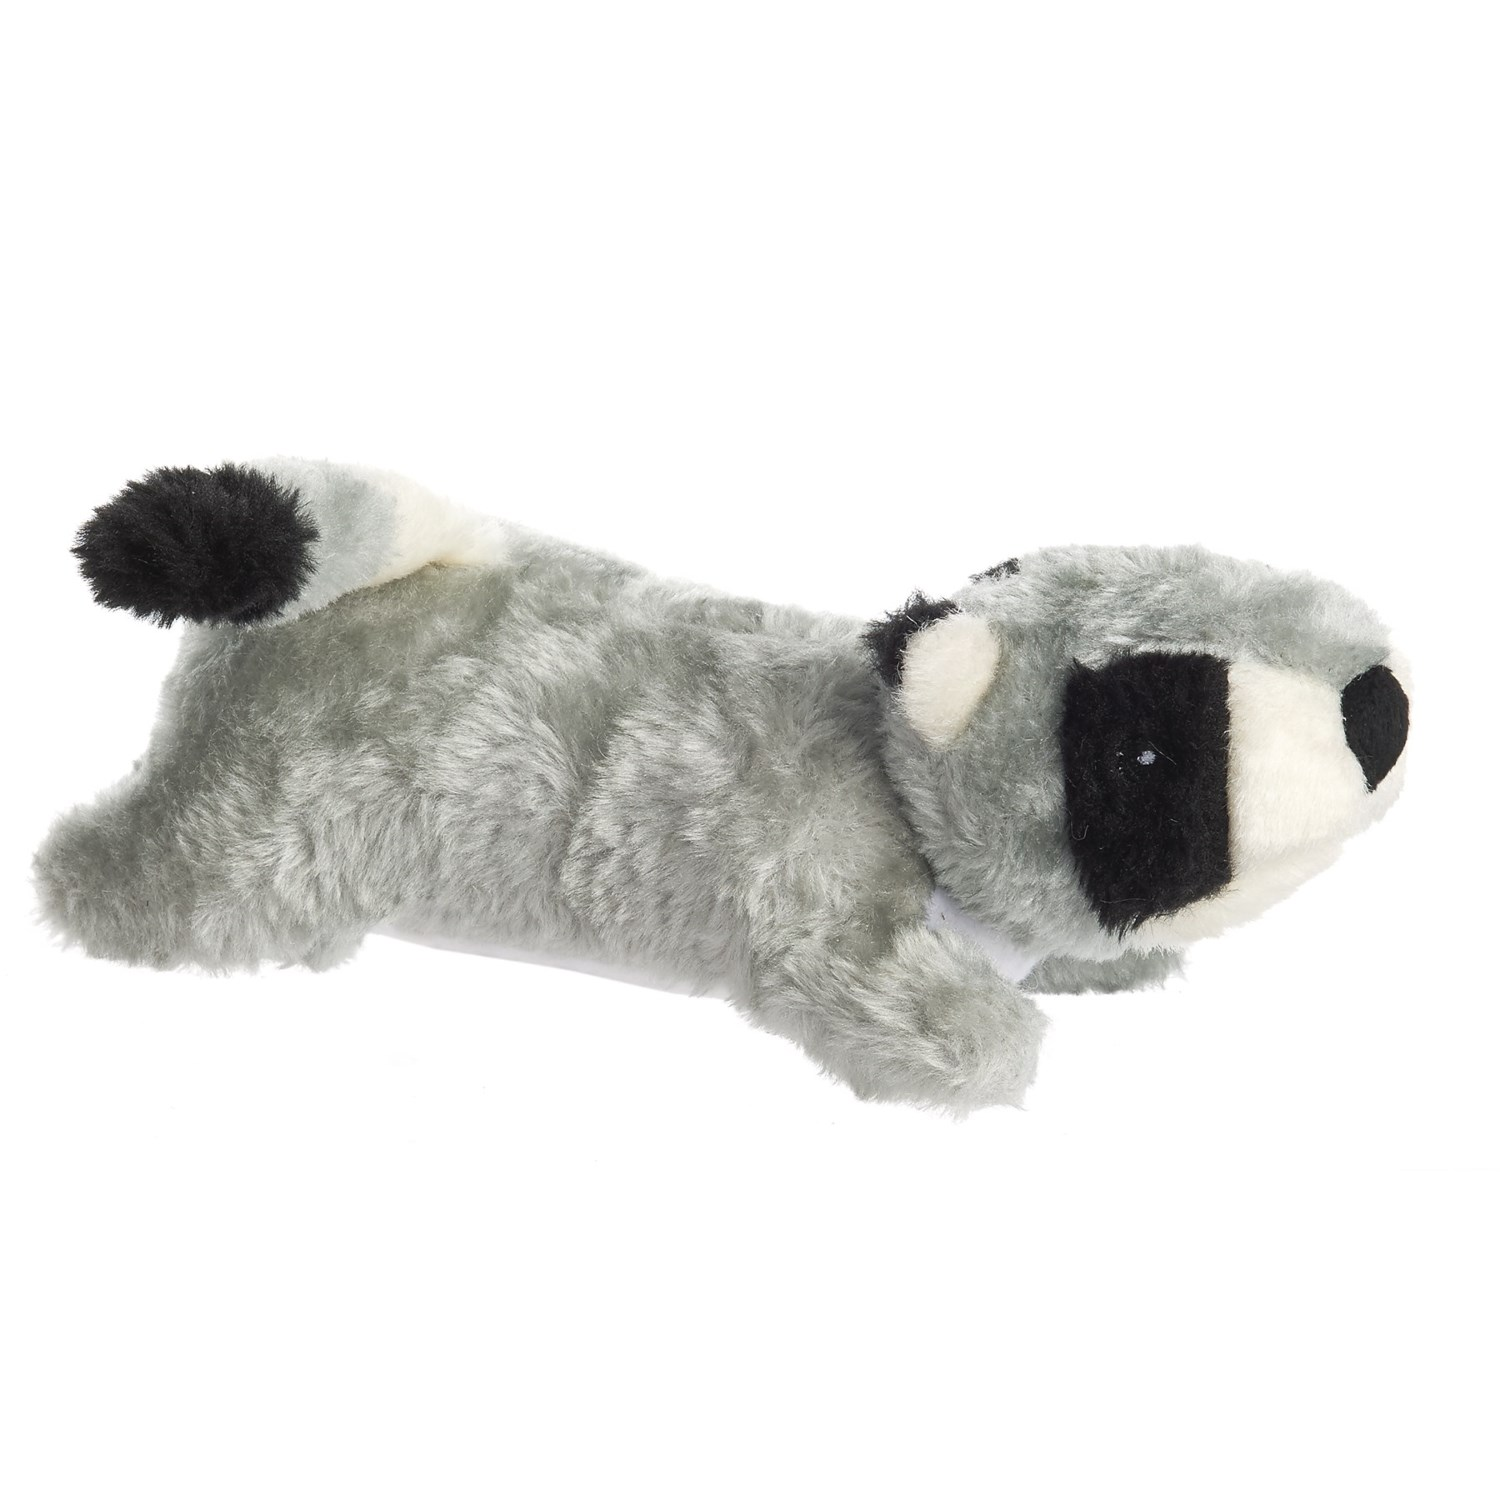 Animal Planet Plush Dog Toy Squeaker Save 33%